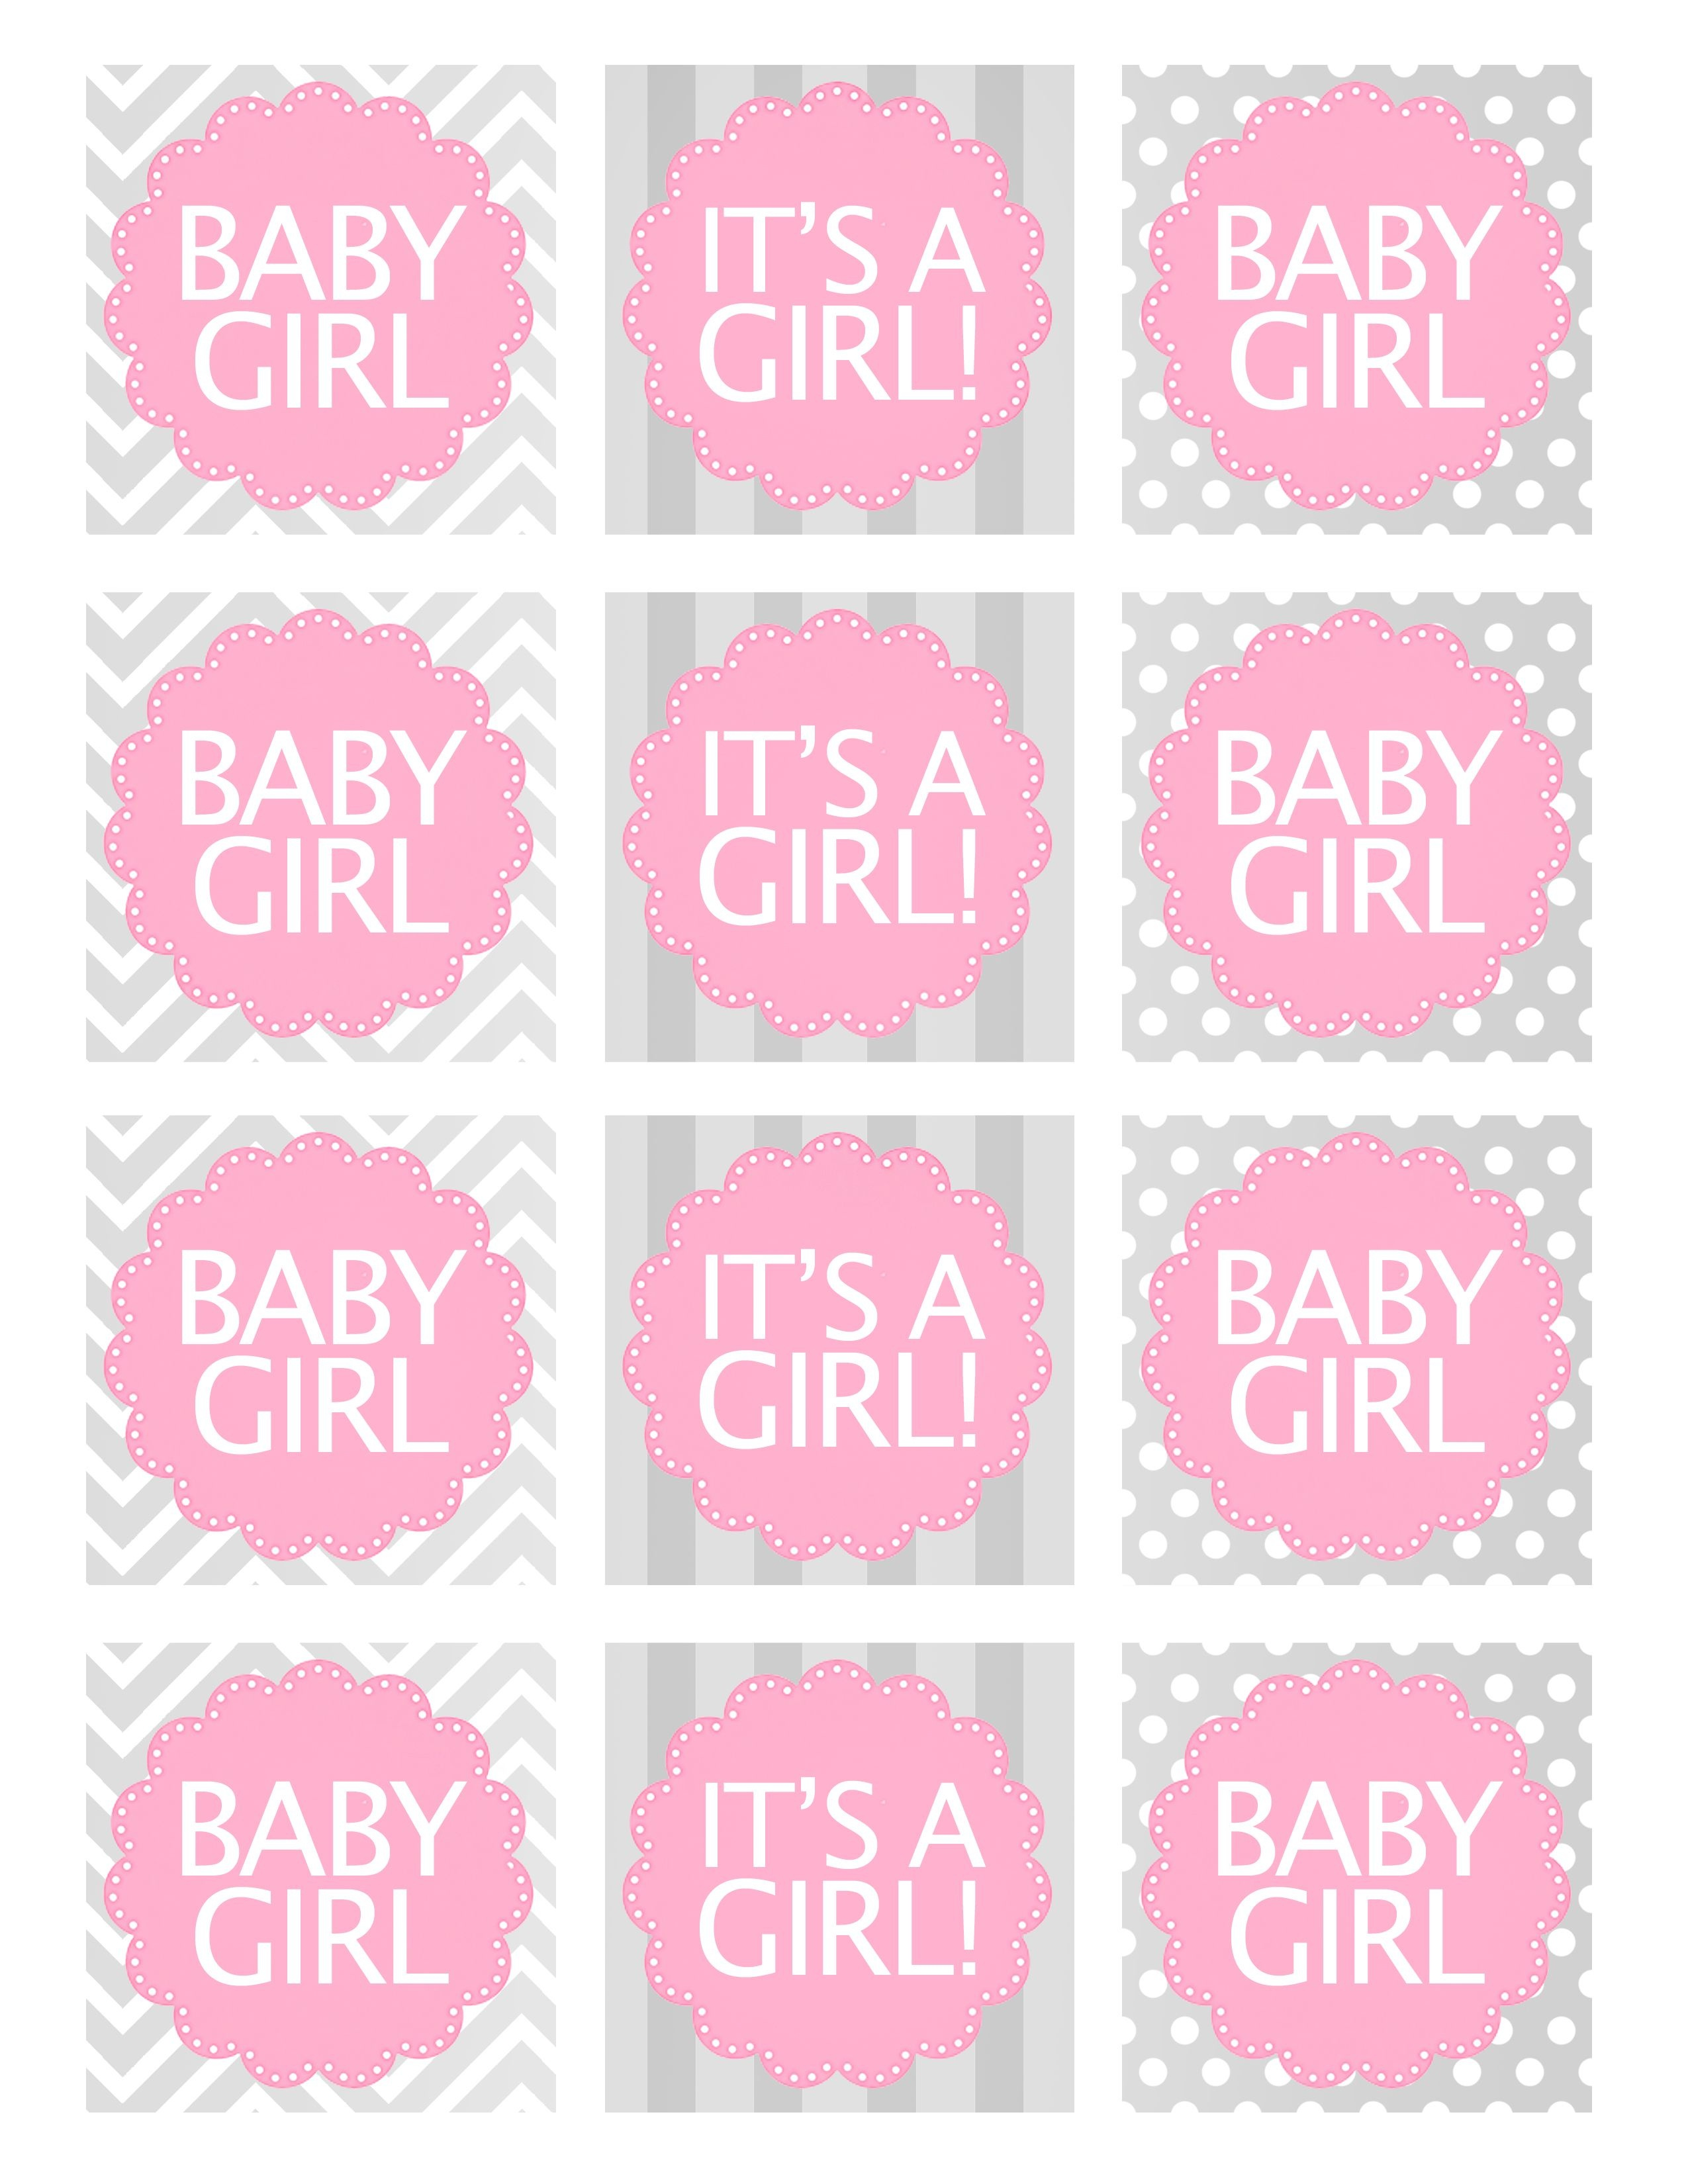 Baby Girl Shower Free Printables | Baby Shower Ideas | Baby Shower - Free Printable Baby Shower Label Templates